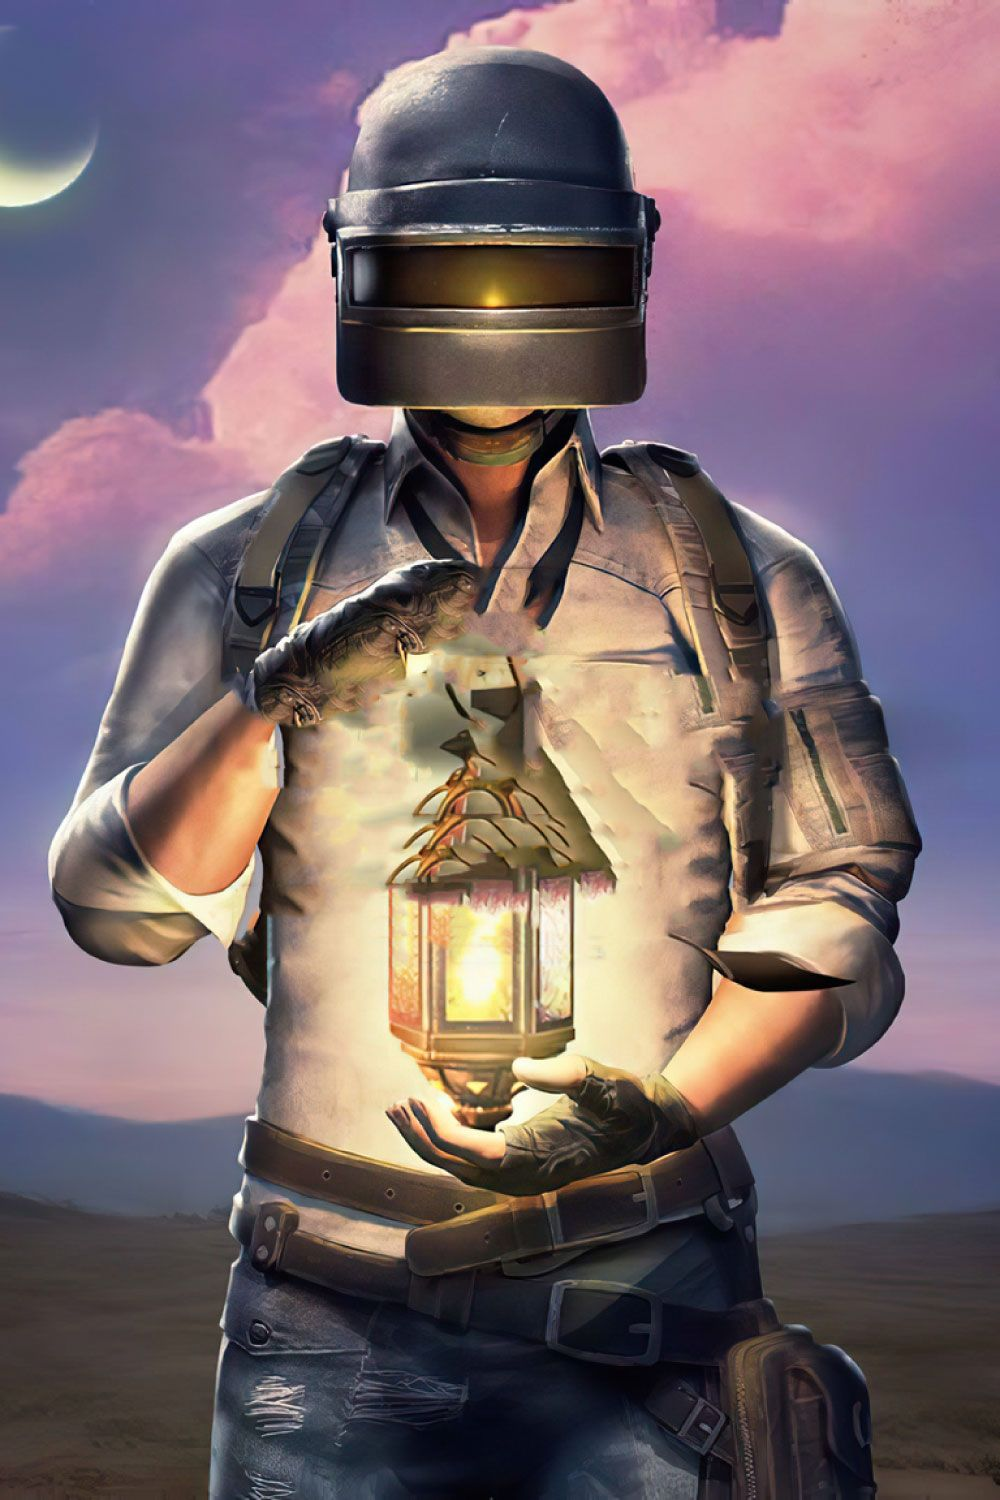 20 Best Pubg Wallpapers In Hd Download For Pc And Mobile Havali Logo Urun Tasarimi Savascilar